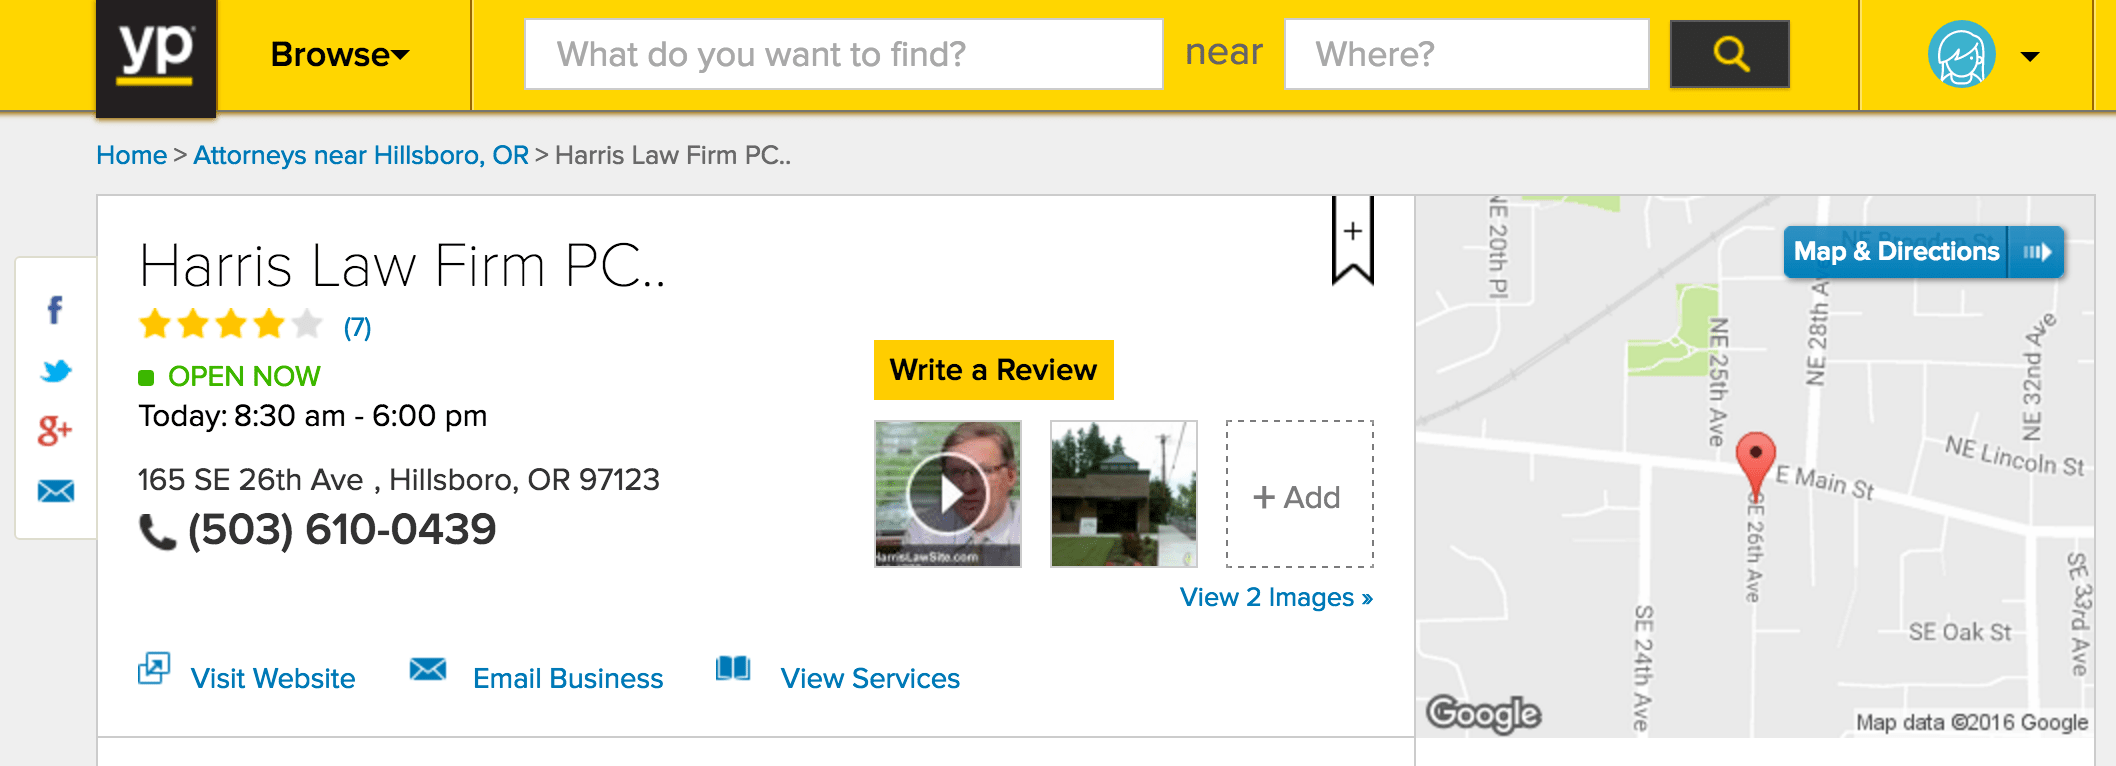 Add_Your_Business_to_Yellow_Pages_-_Intuitive_Digital_-_Linkarati.png